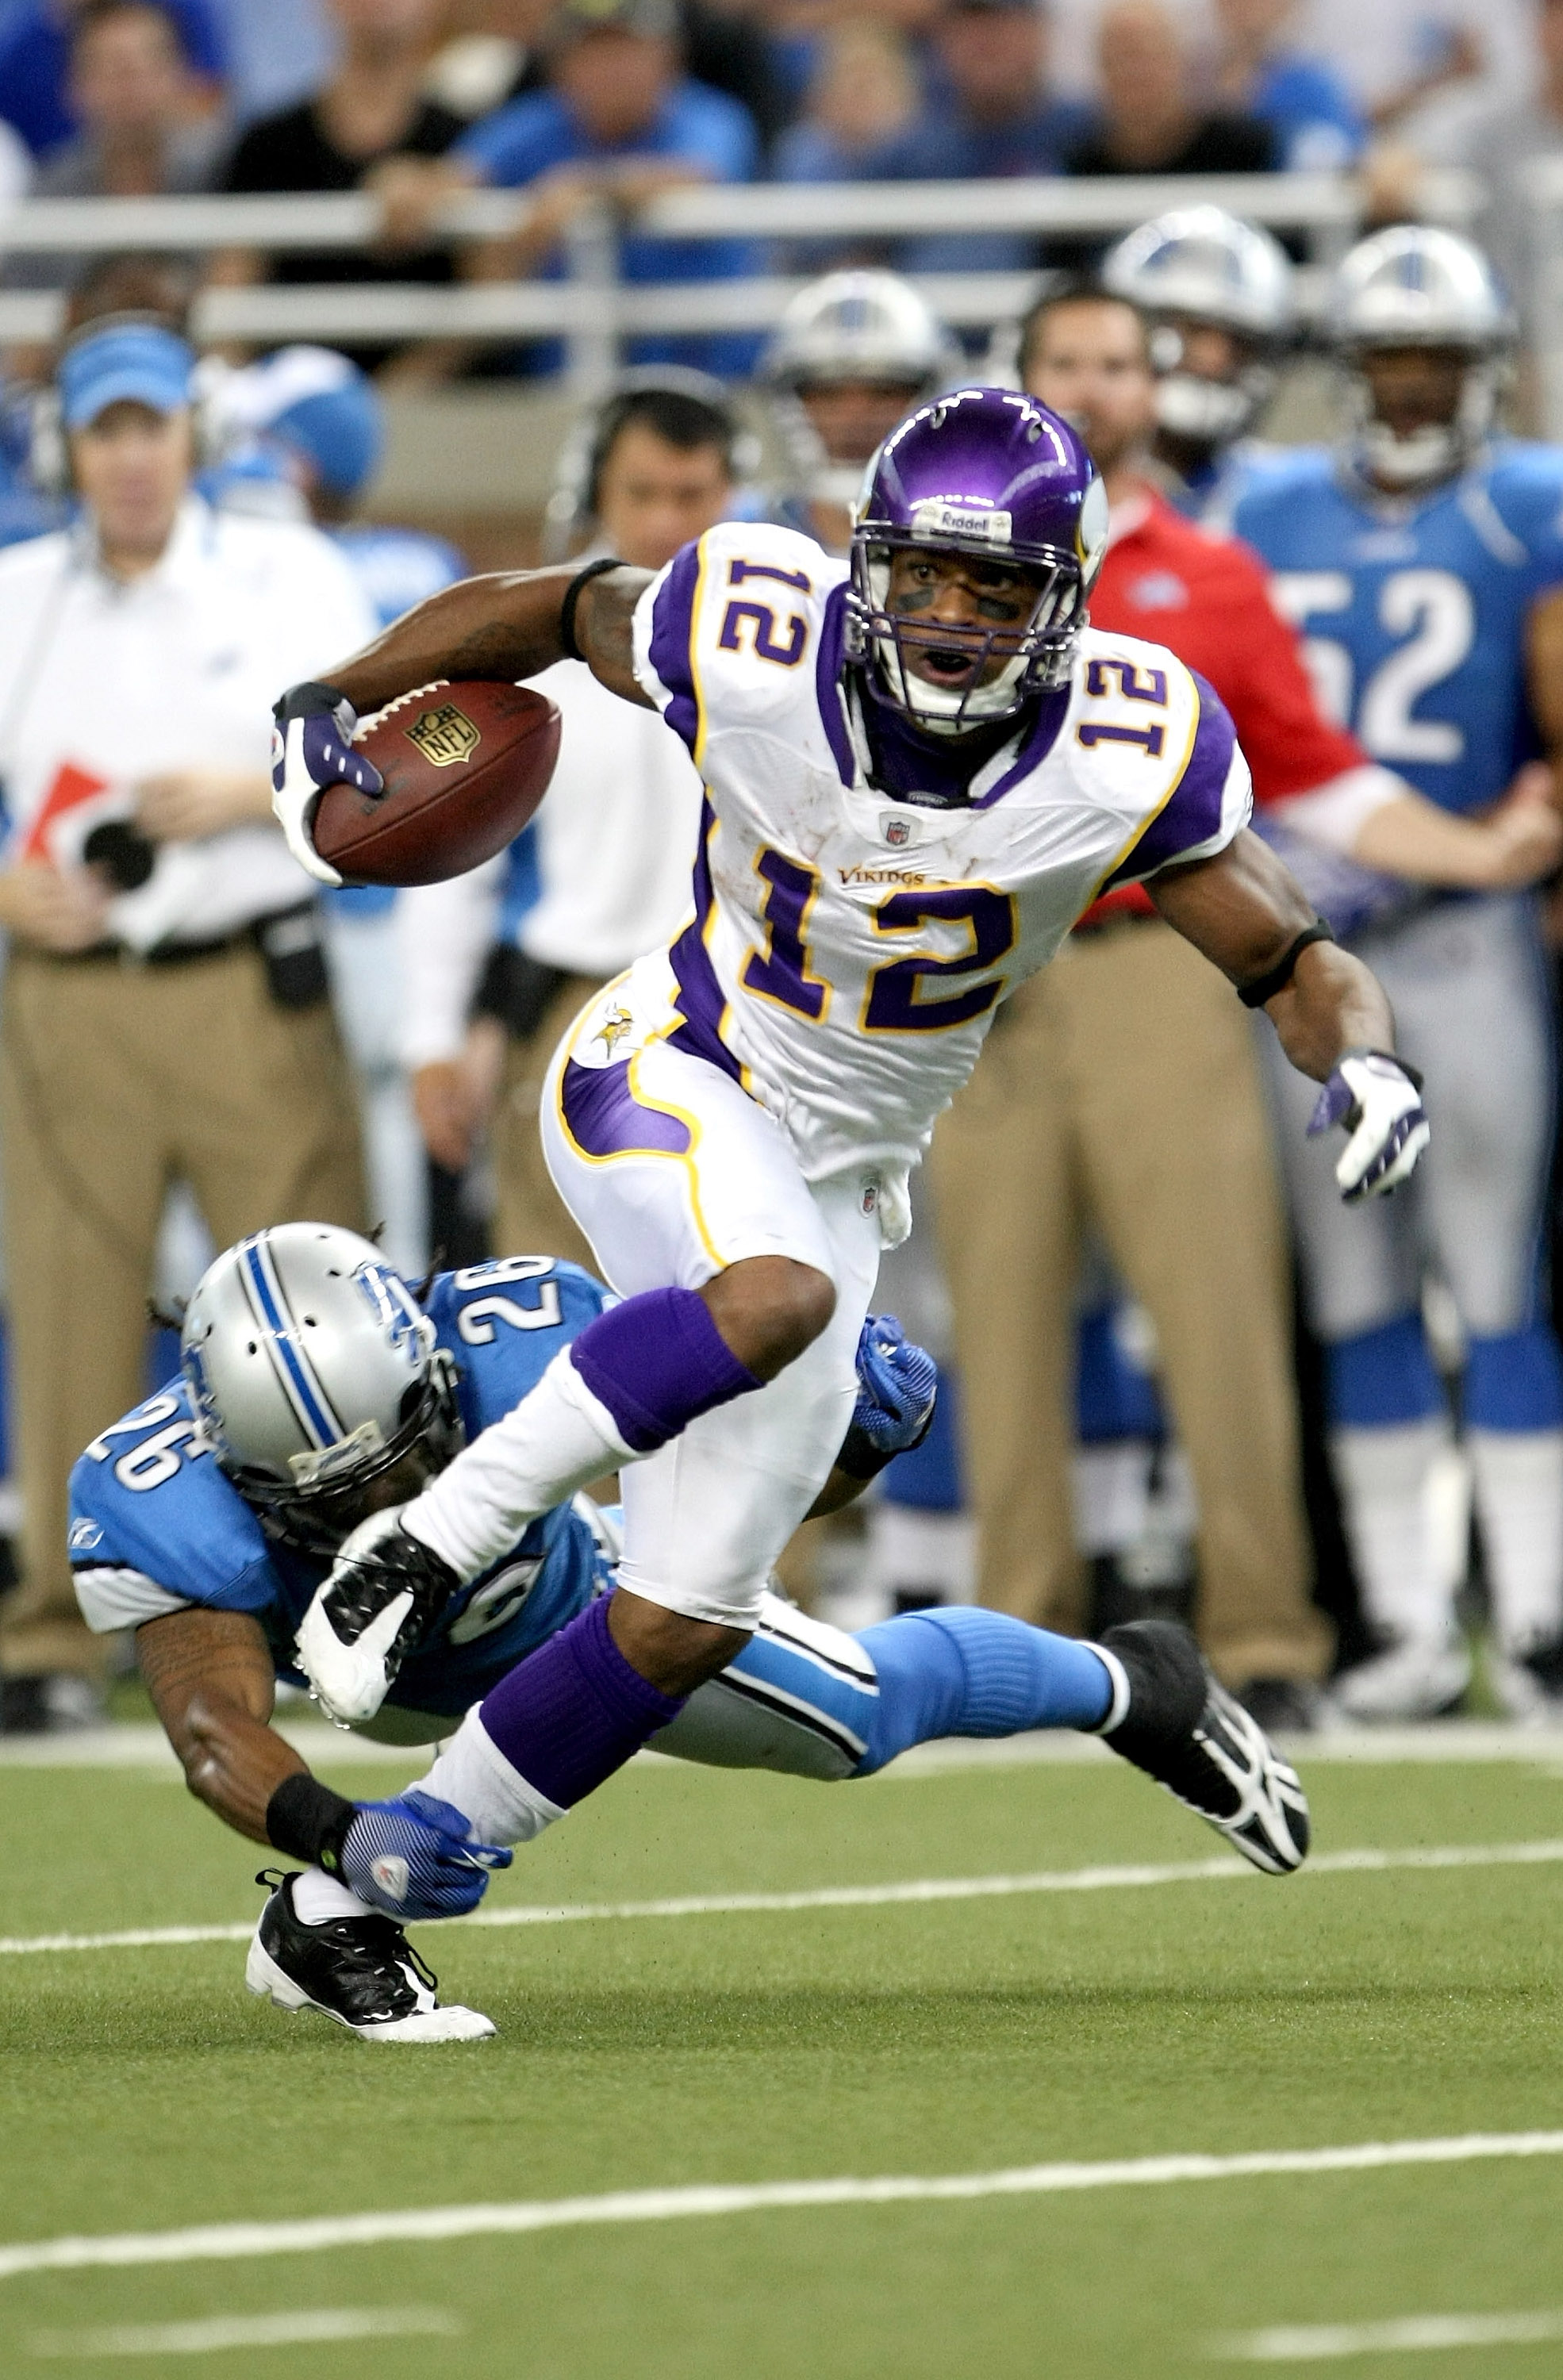 DETROIT - SEPTEMBER 20:  Wide receiver Percy Harvin #12 of the Minnesota Vikings carries the ball past safety Louis Delmas #26 of the Detroit Lions at Ford Field on September 20, 2009 in Detroit, Michigan. The Vikings won 27-13.  (Photo by Stephen Dunn/Ge